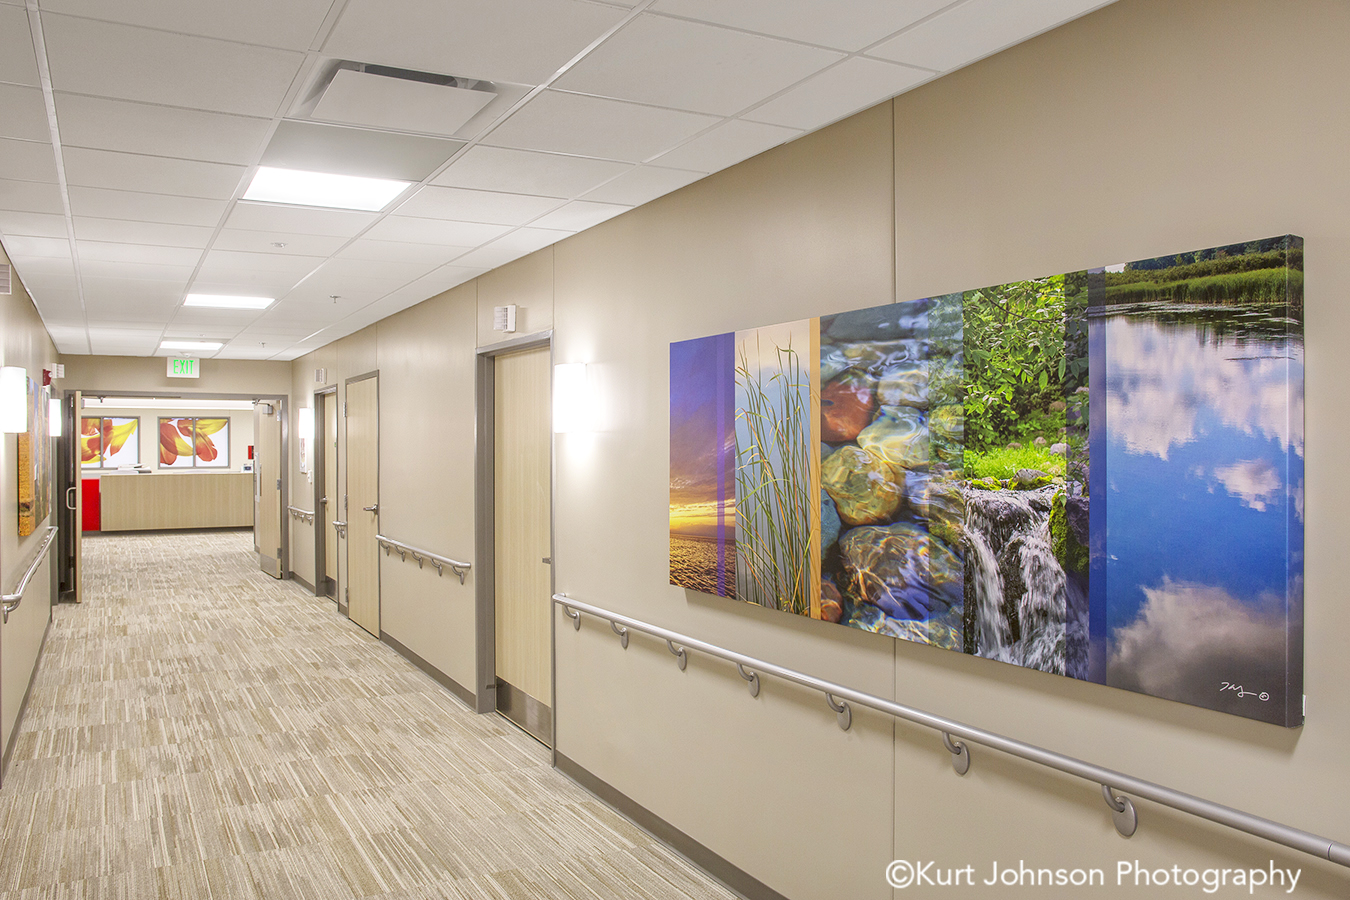 Regional Health Install gallery wrapped canvas landscape waterscape color slice art installation healthcare design